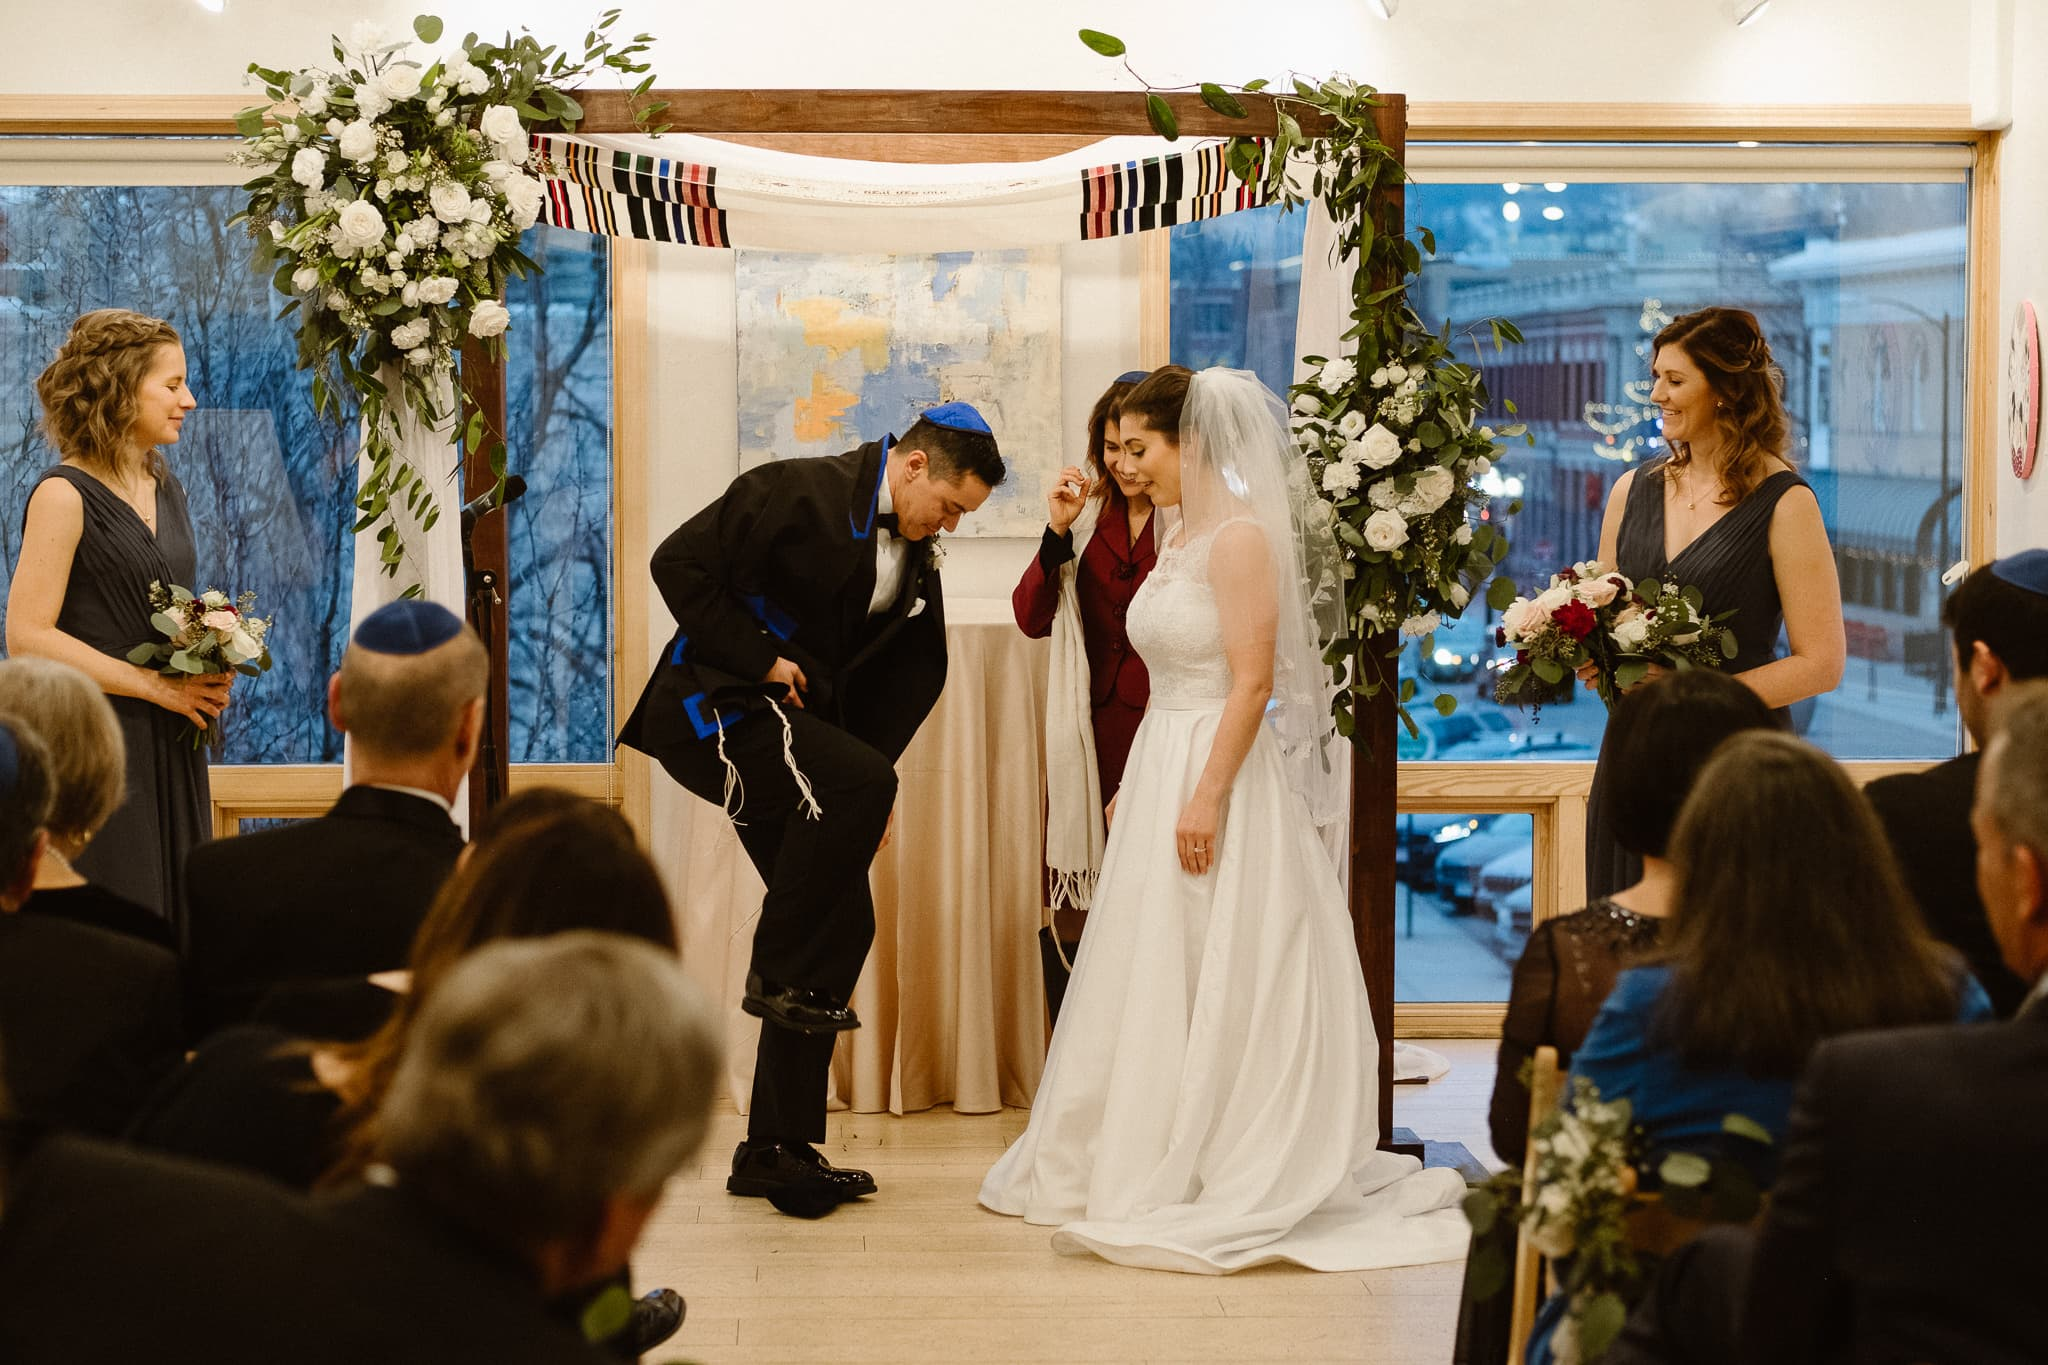 Rembrandt Yard wedding photographer, Boulder wedding photographer, Colorado Jewish wedding ceremony, groom breaking glass